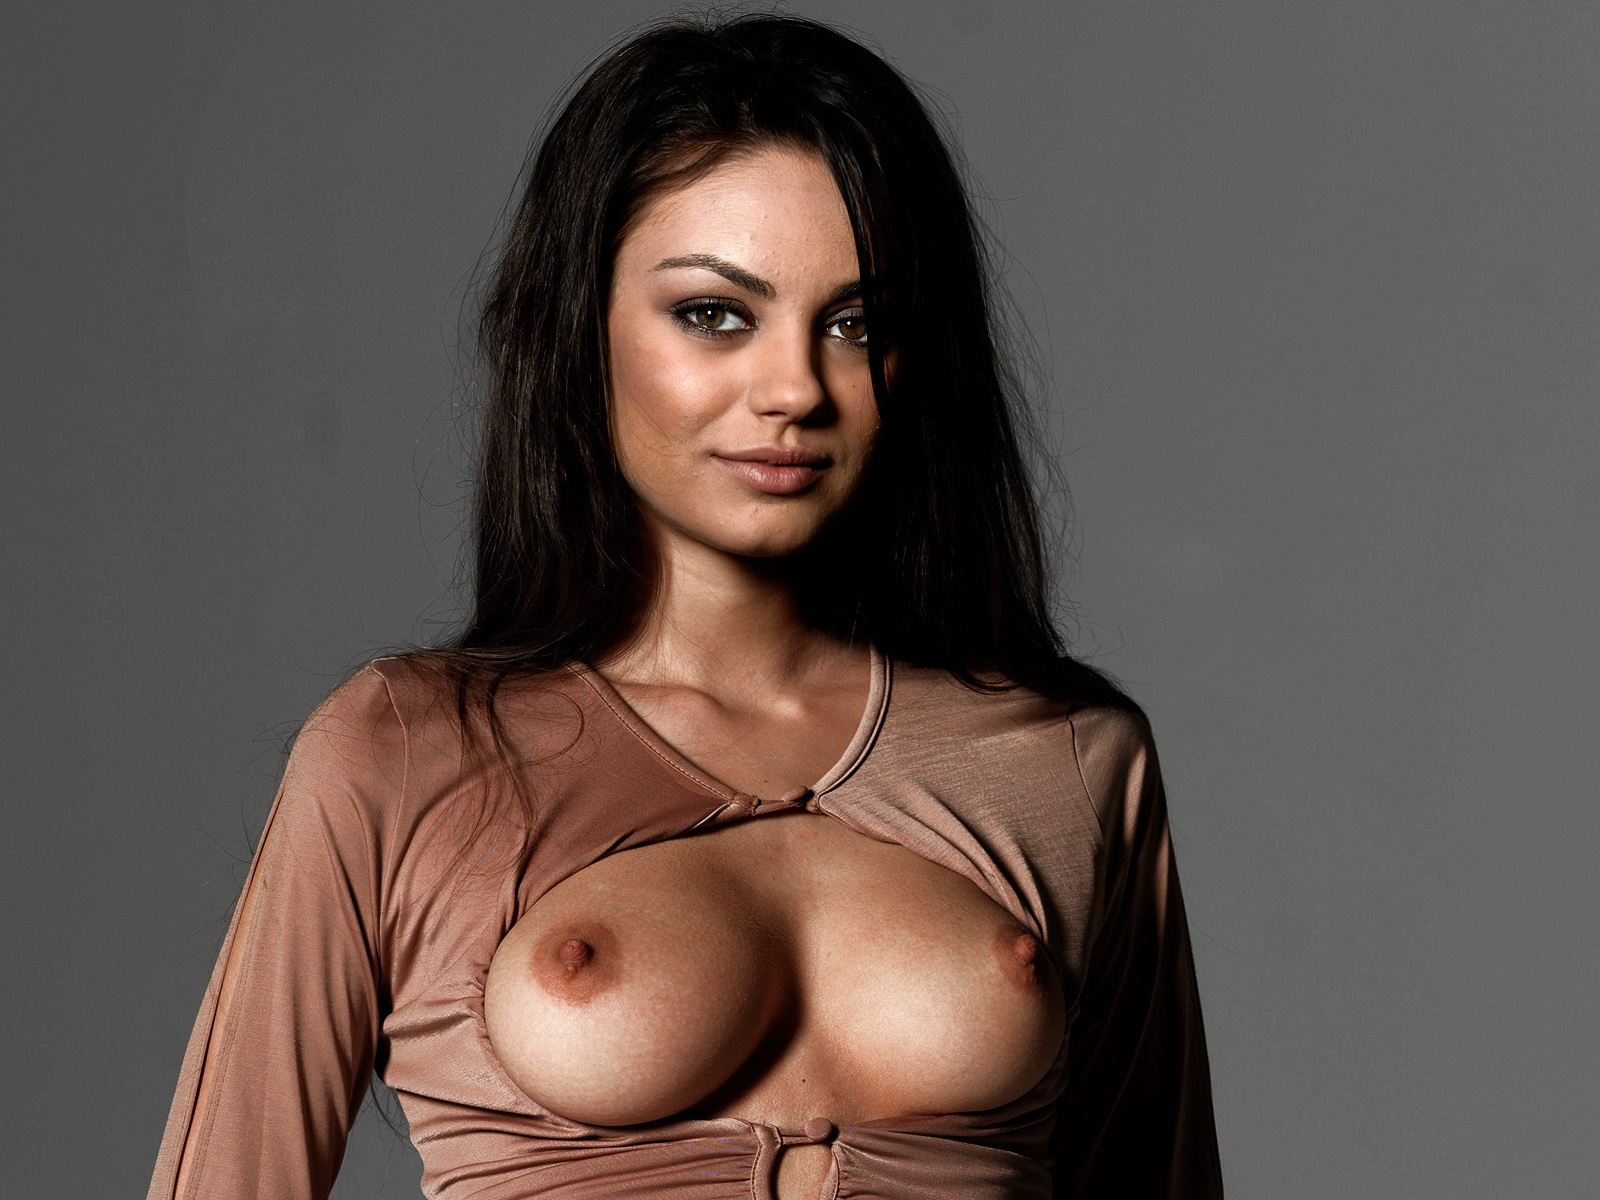 Elisha cuthbert and mila kunis sexy girls dressed in wh